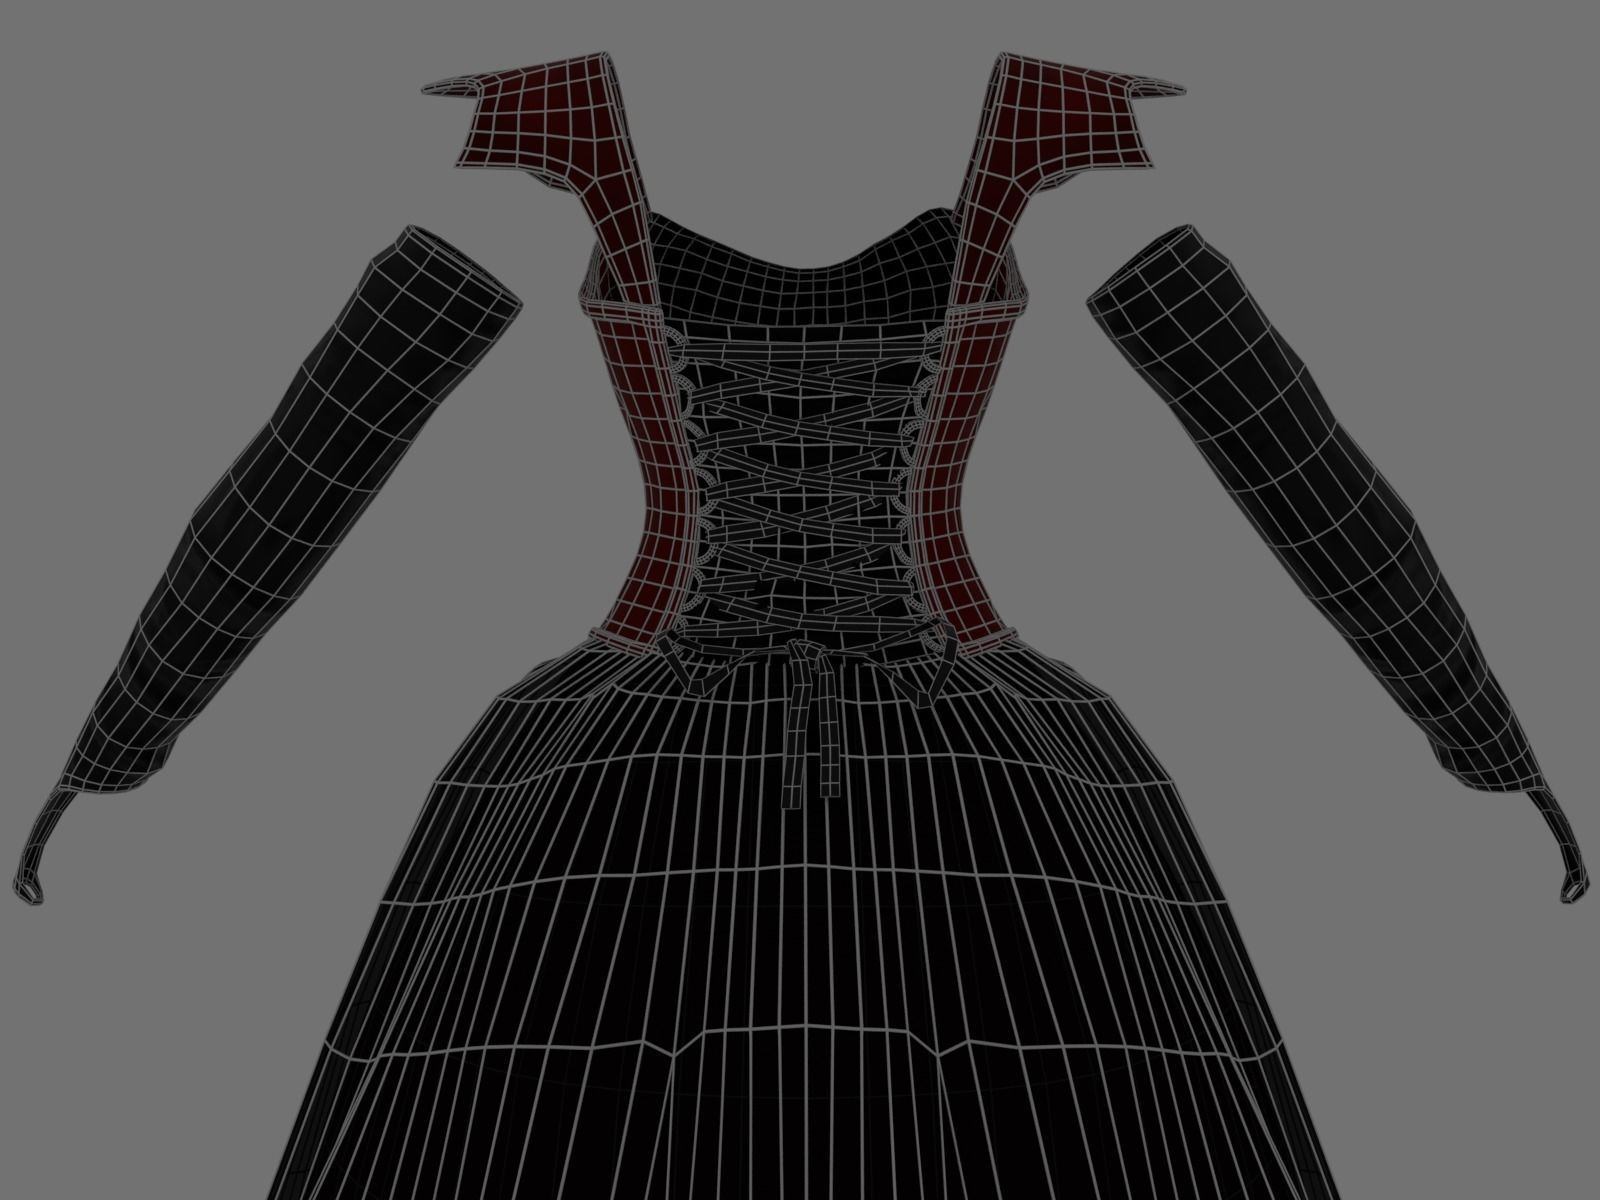 a5b081dbd2f Victorian Gothic Dress 5 Low-poly 3D model